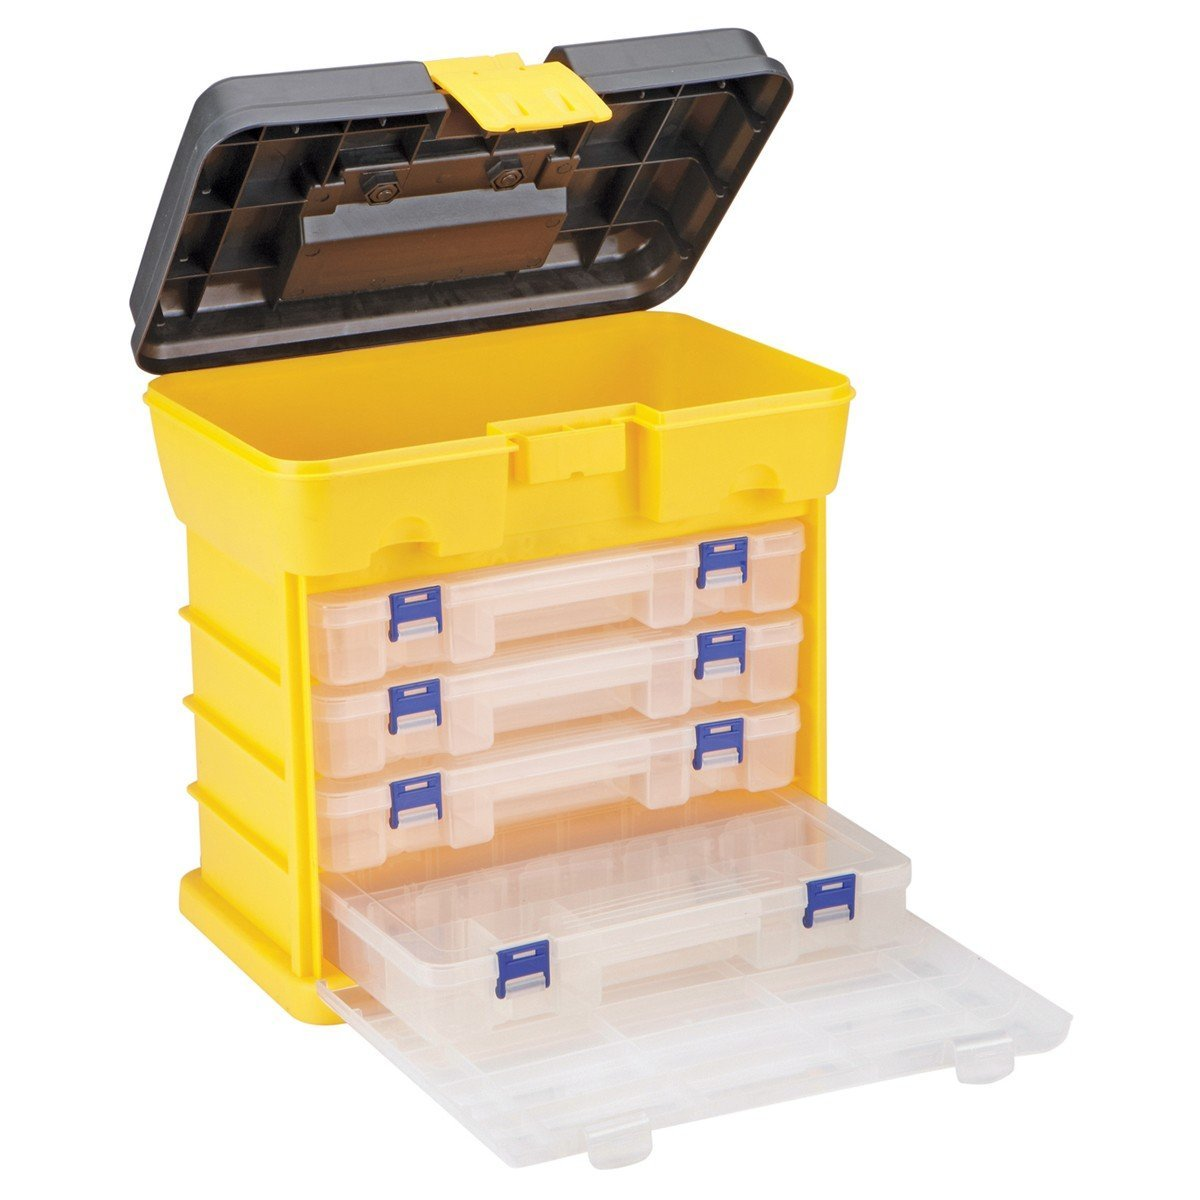 12-Inch Darice 97923 Toolbox with Built-in Organizer